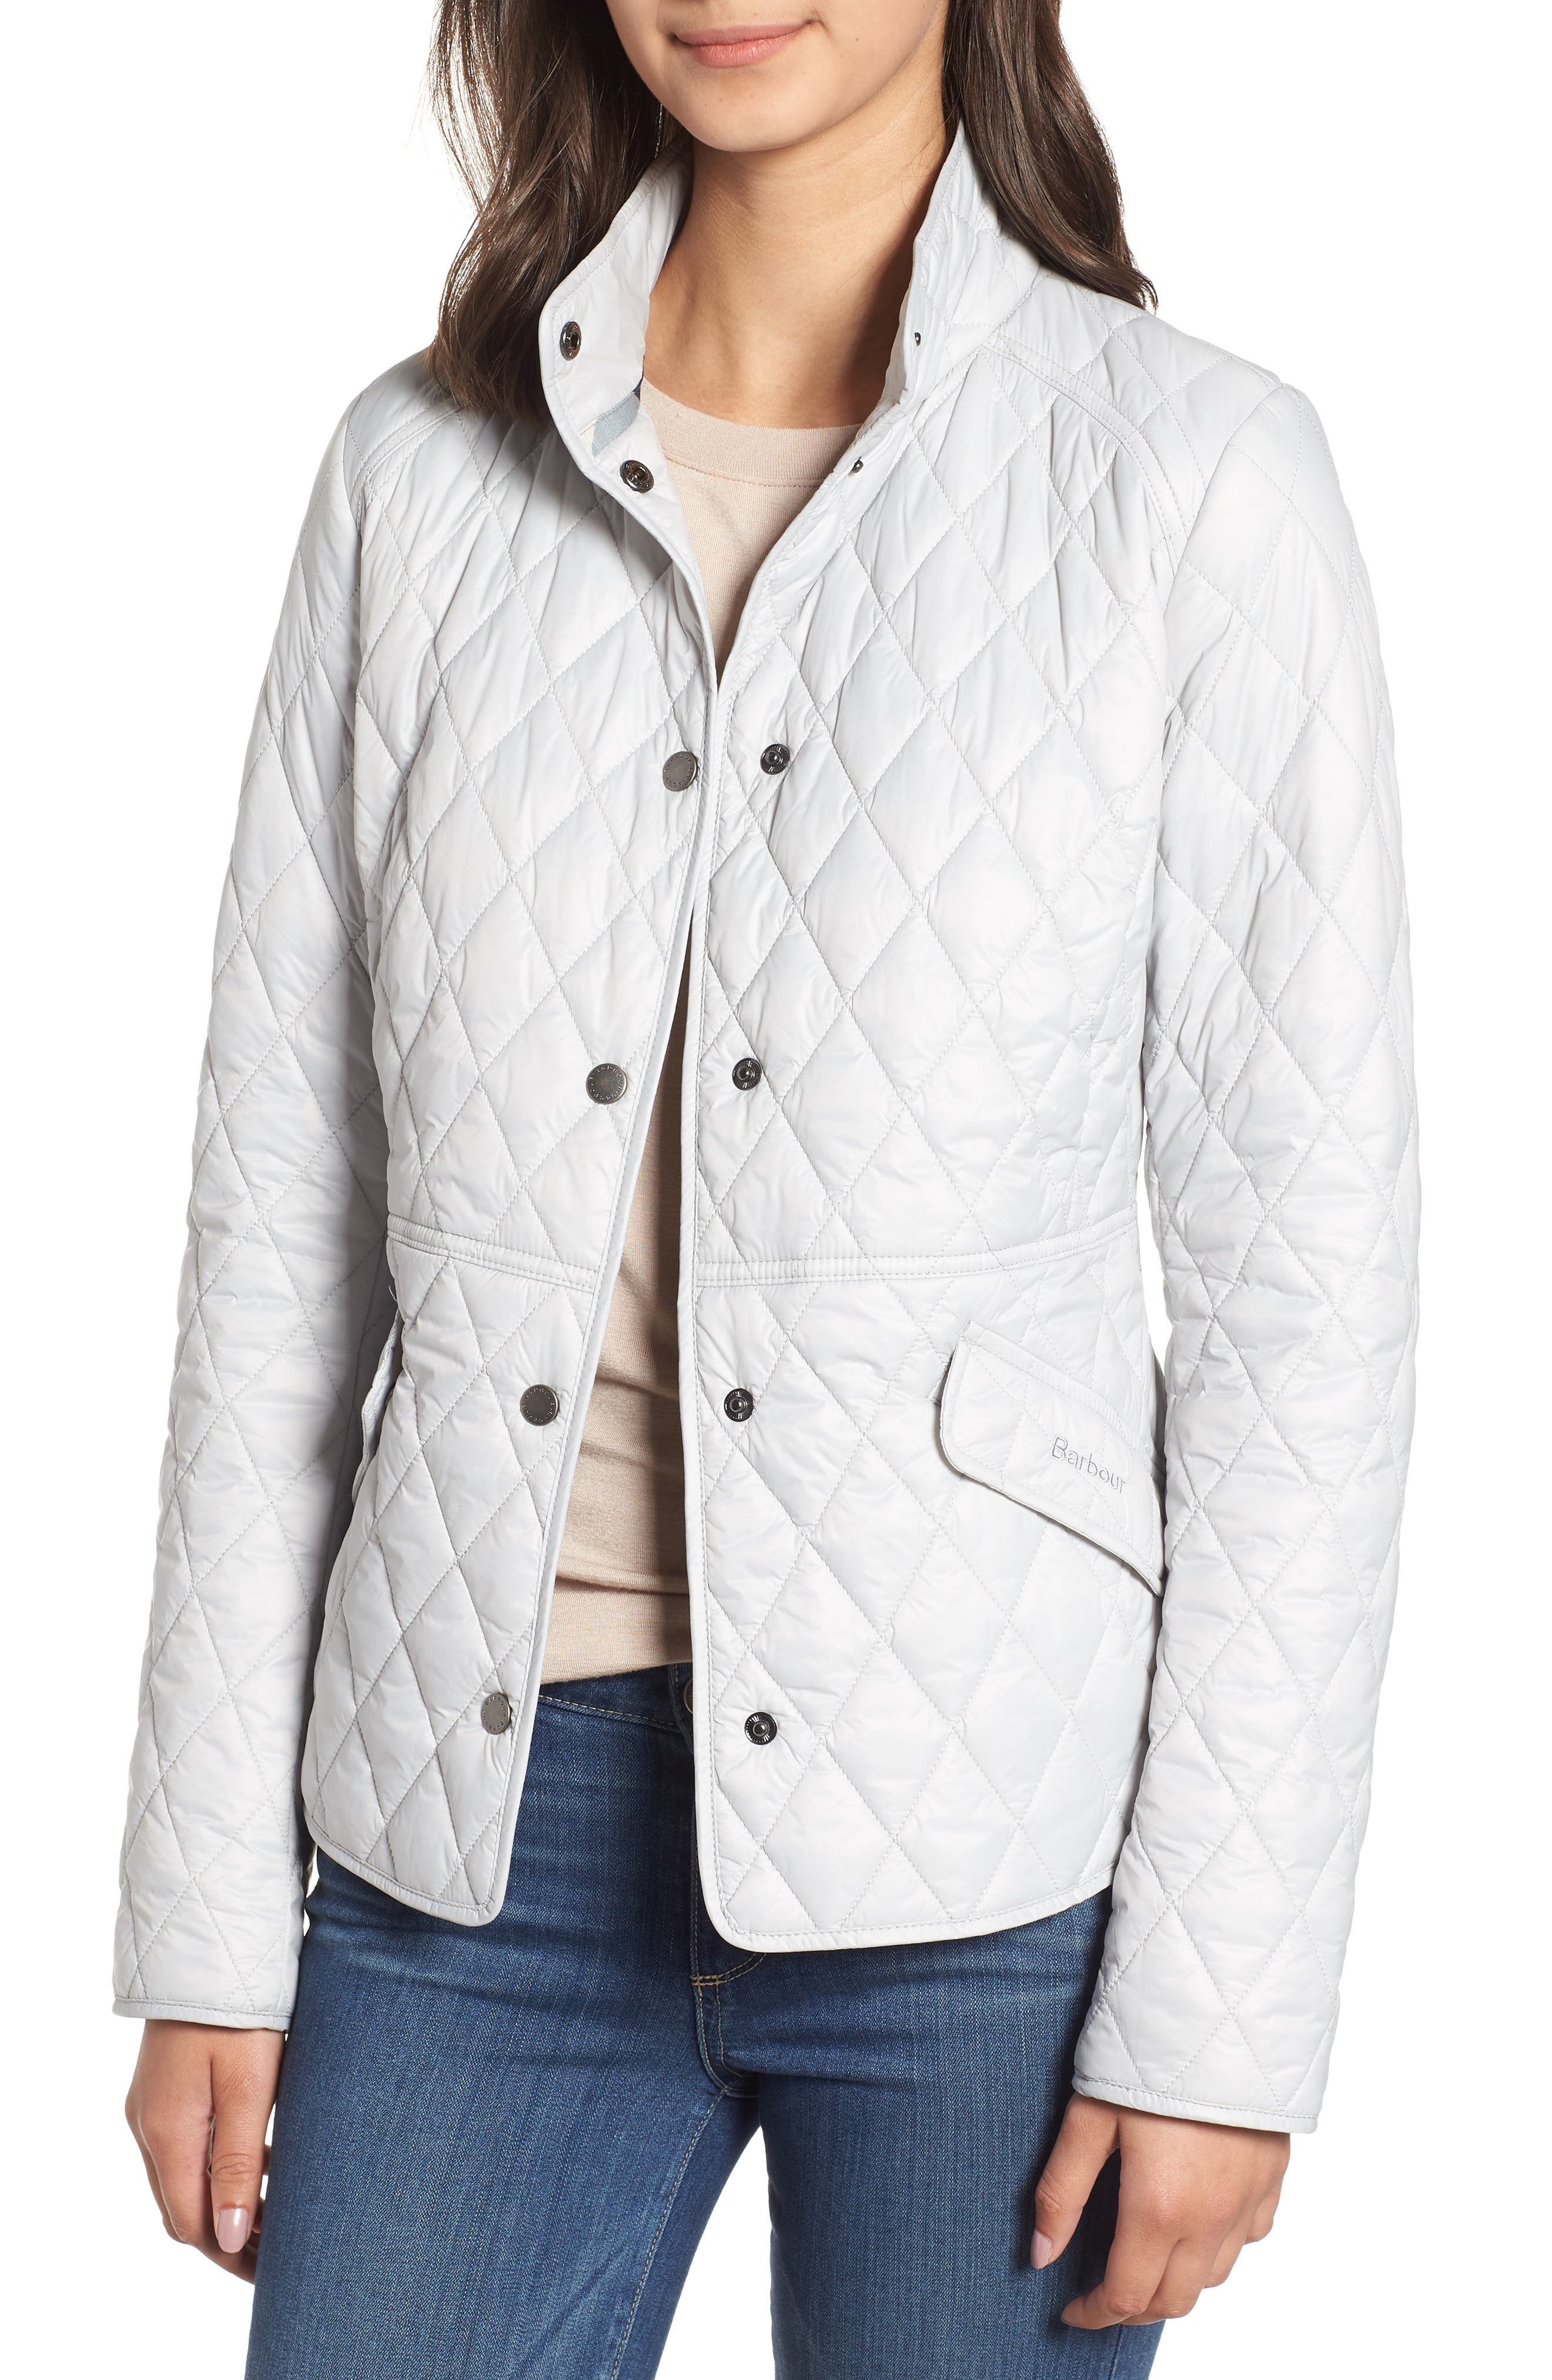 BARBOUR, Annis Quilted Jacket, Main thumbnail 1, color, 100